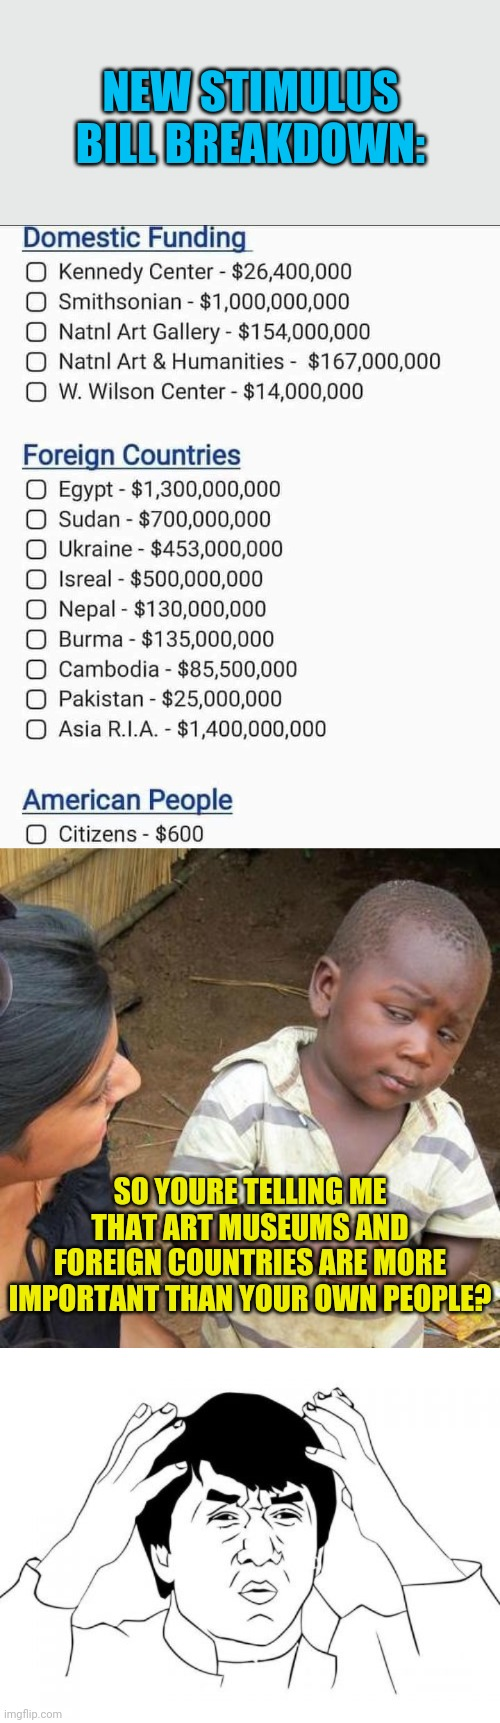 This is putting America First? |  NEW STIMULUS BILL BREAKDOWN:; SO YOURE TELLING ME THAT ART MUSEUMS AND FOREIGN COUNTRIES ARE MORE IMPORTANT THAN YOUR OWN PEOPLE? | image tagged in memes,third world skeptical kid,jackie chan wtf,congress,stimulus,political meme | made w/ Imgflip meme maker